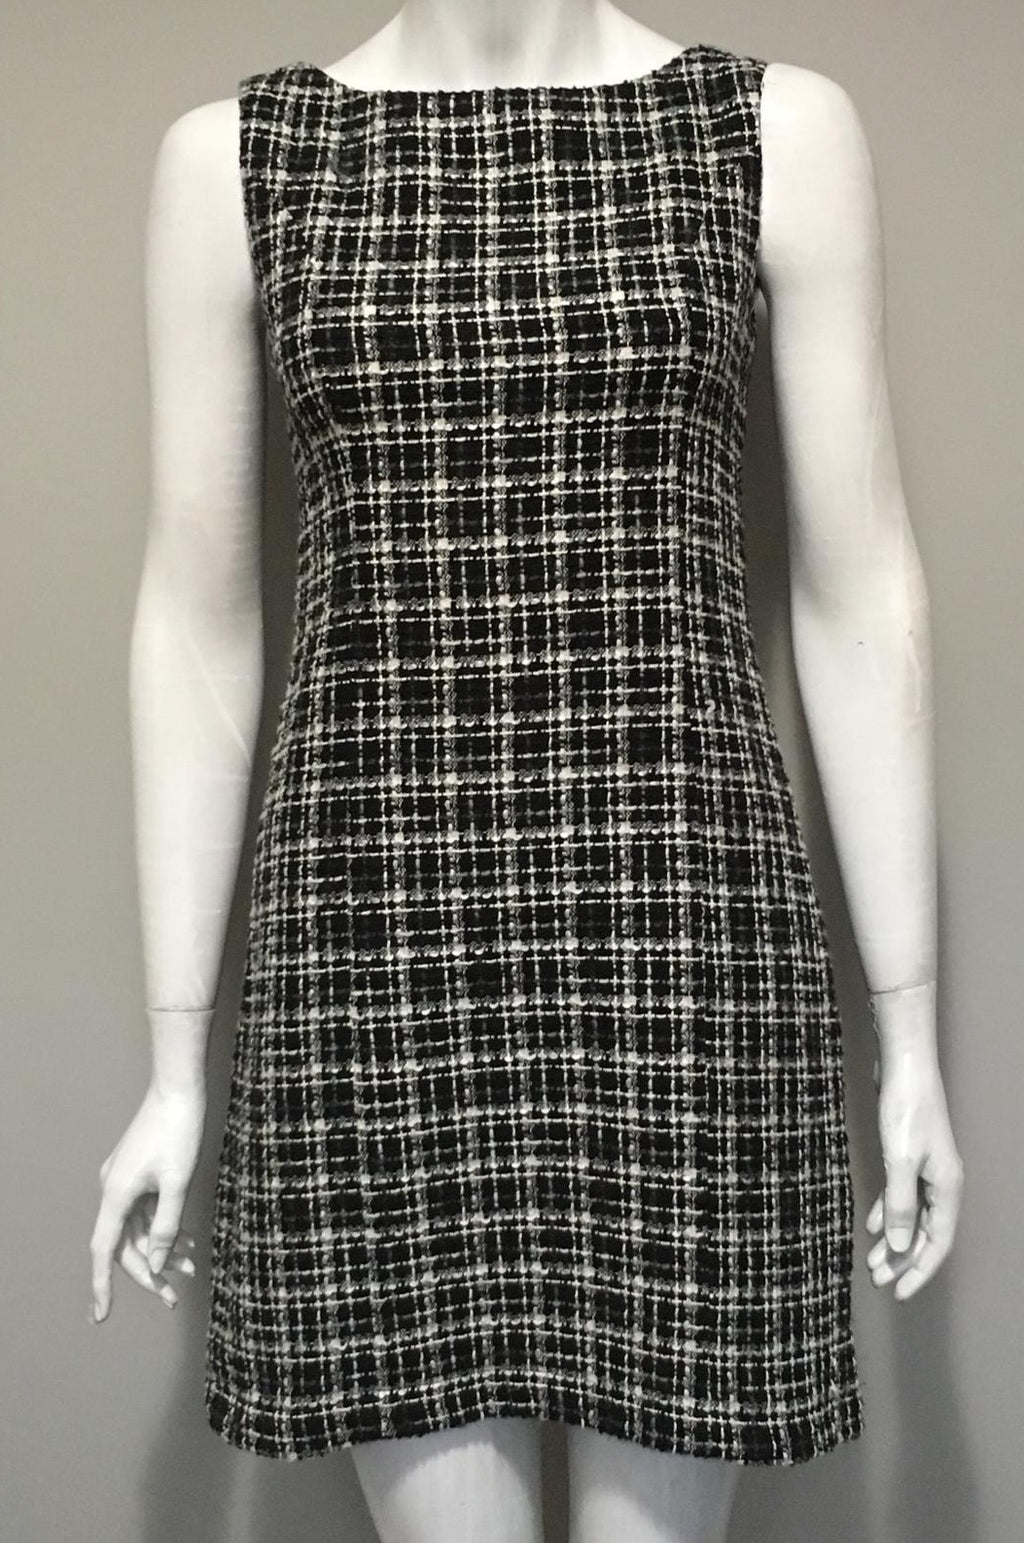 Orsay Multi-Color Sleeveless Tweed Dress Size S/M